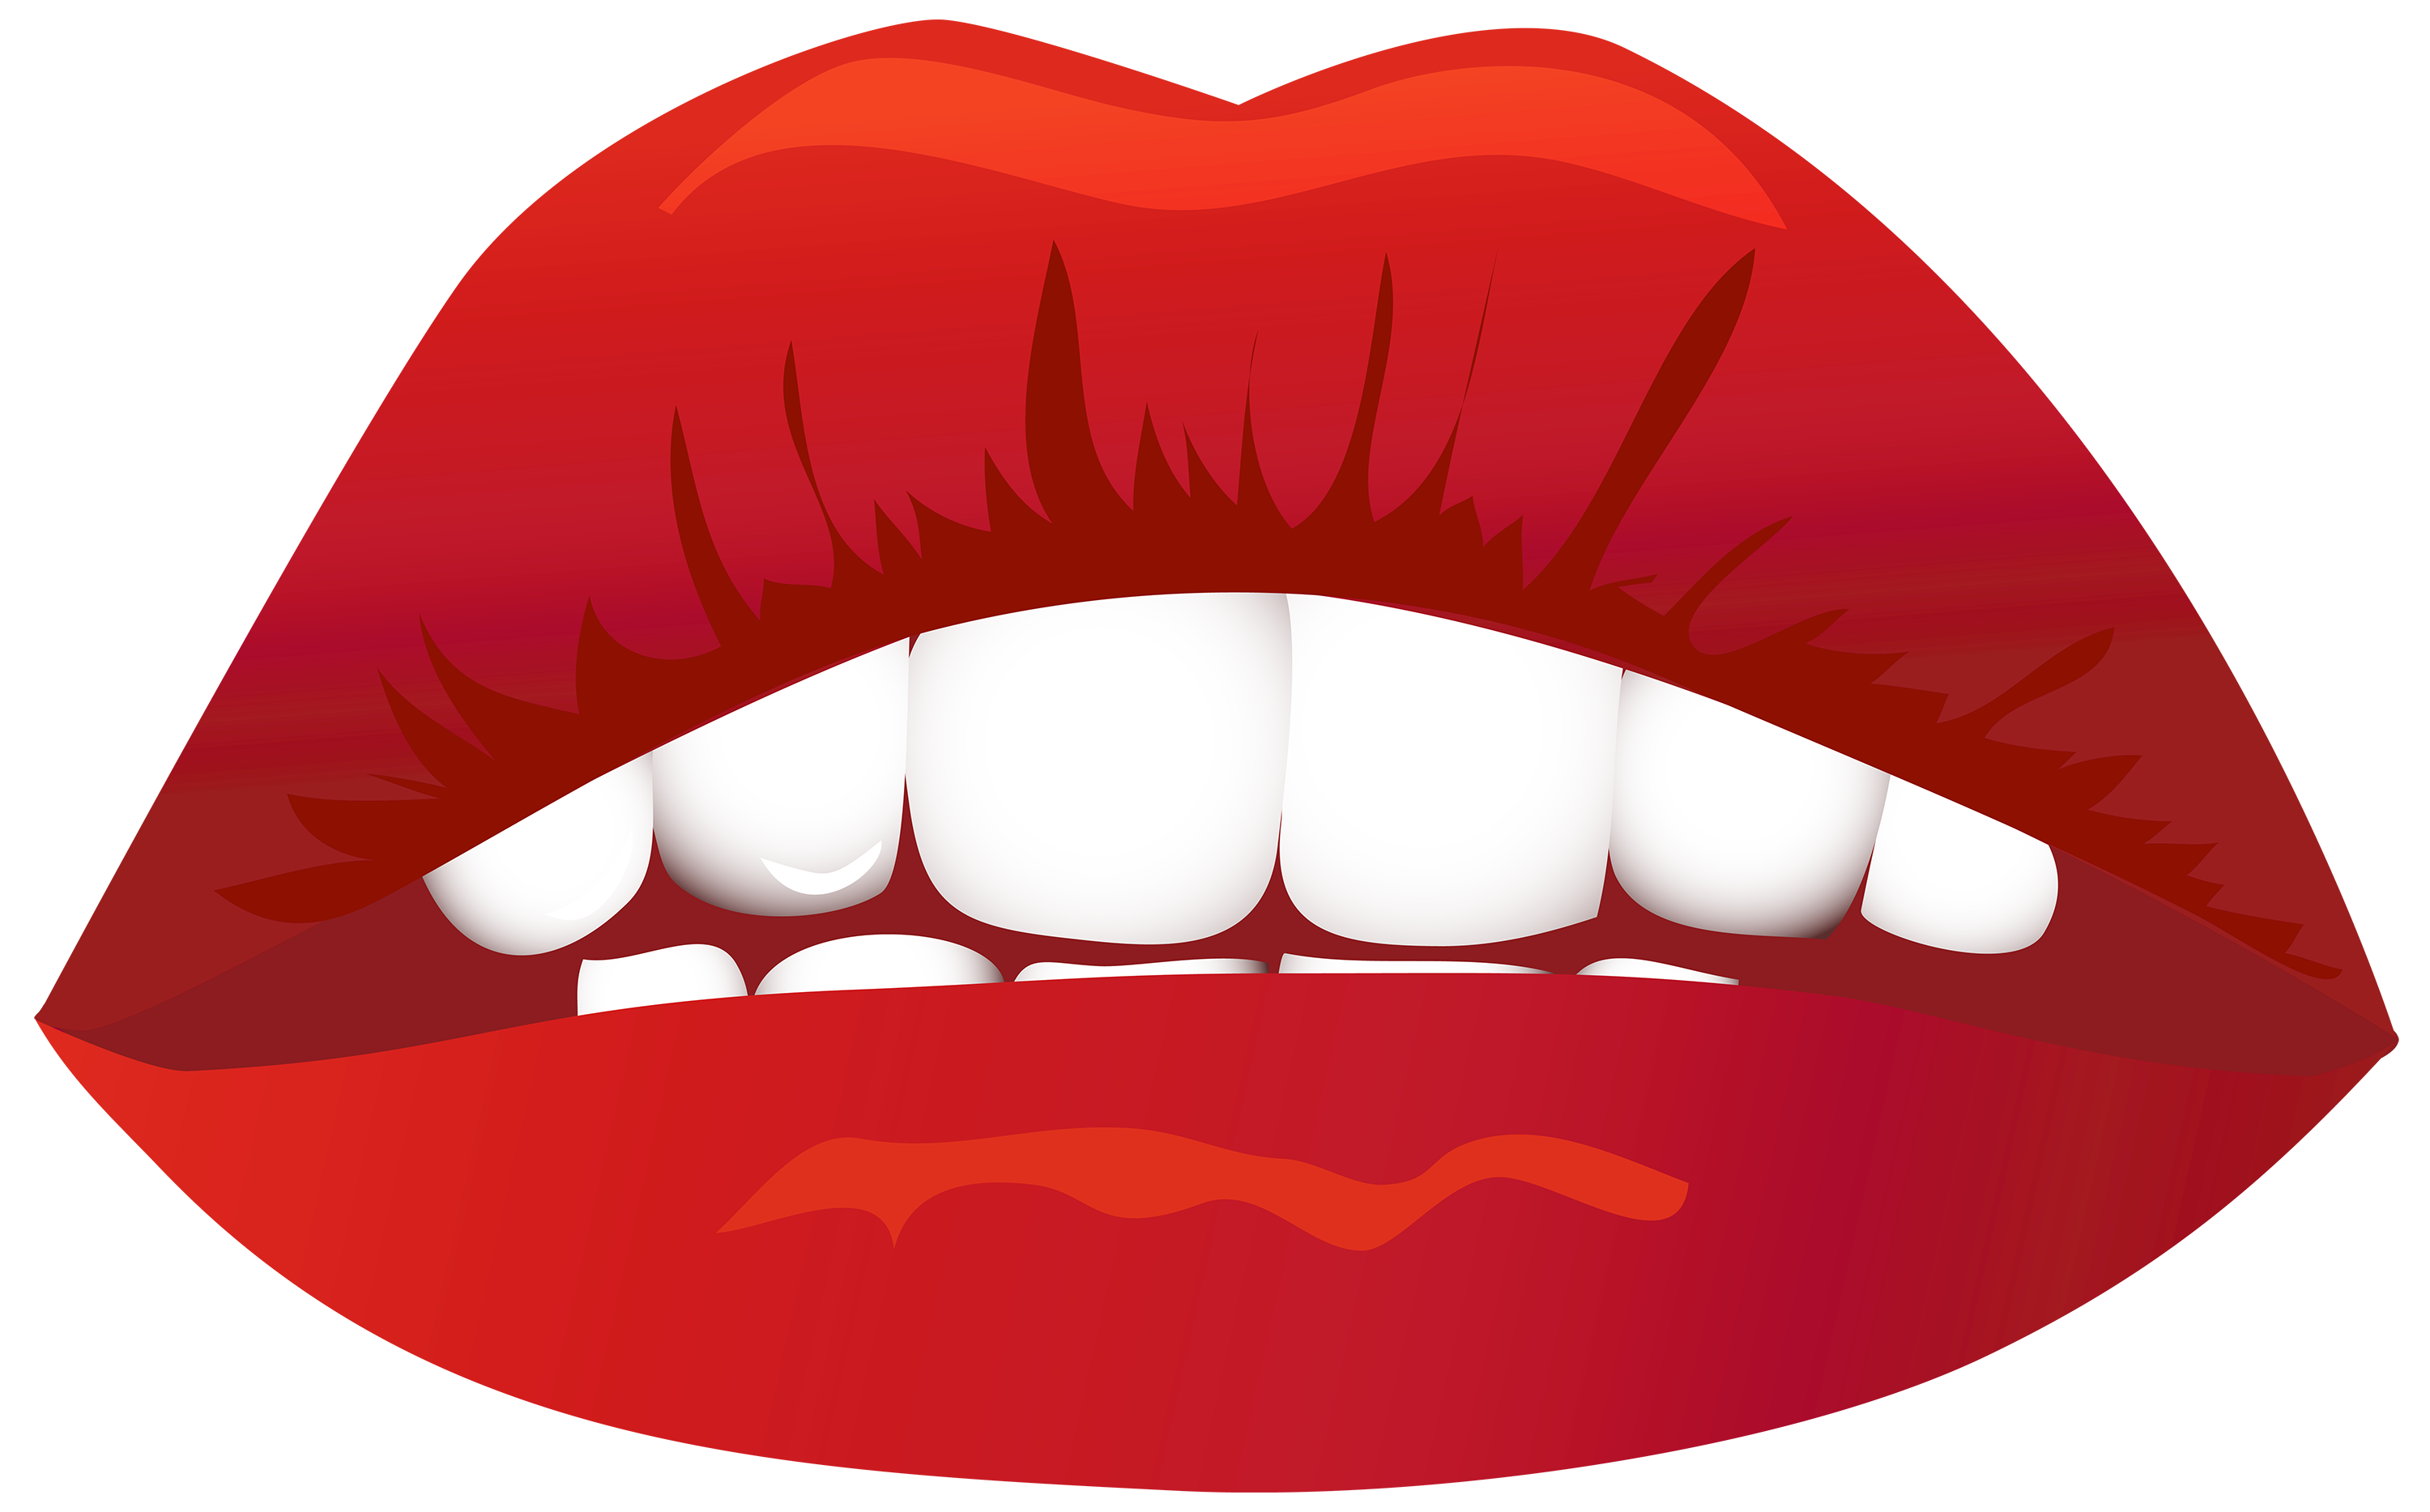 3000x1867 Lips Png Clipart Image